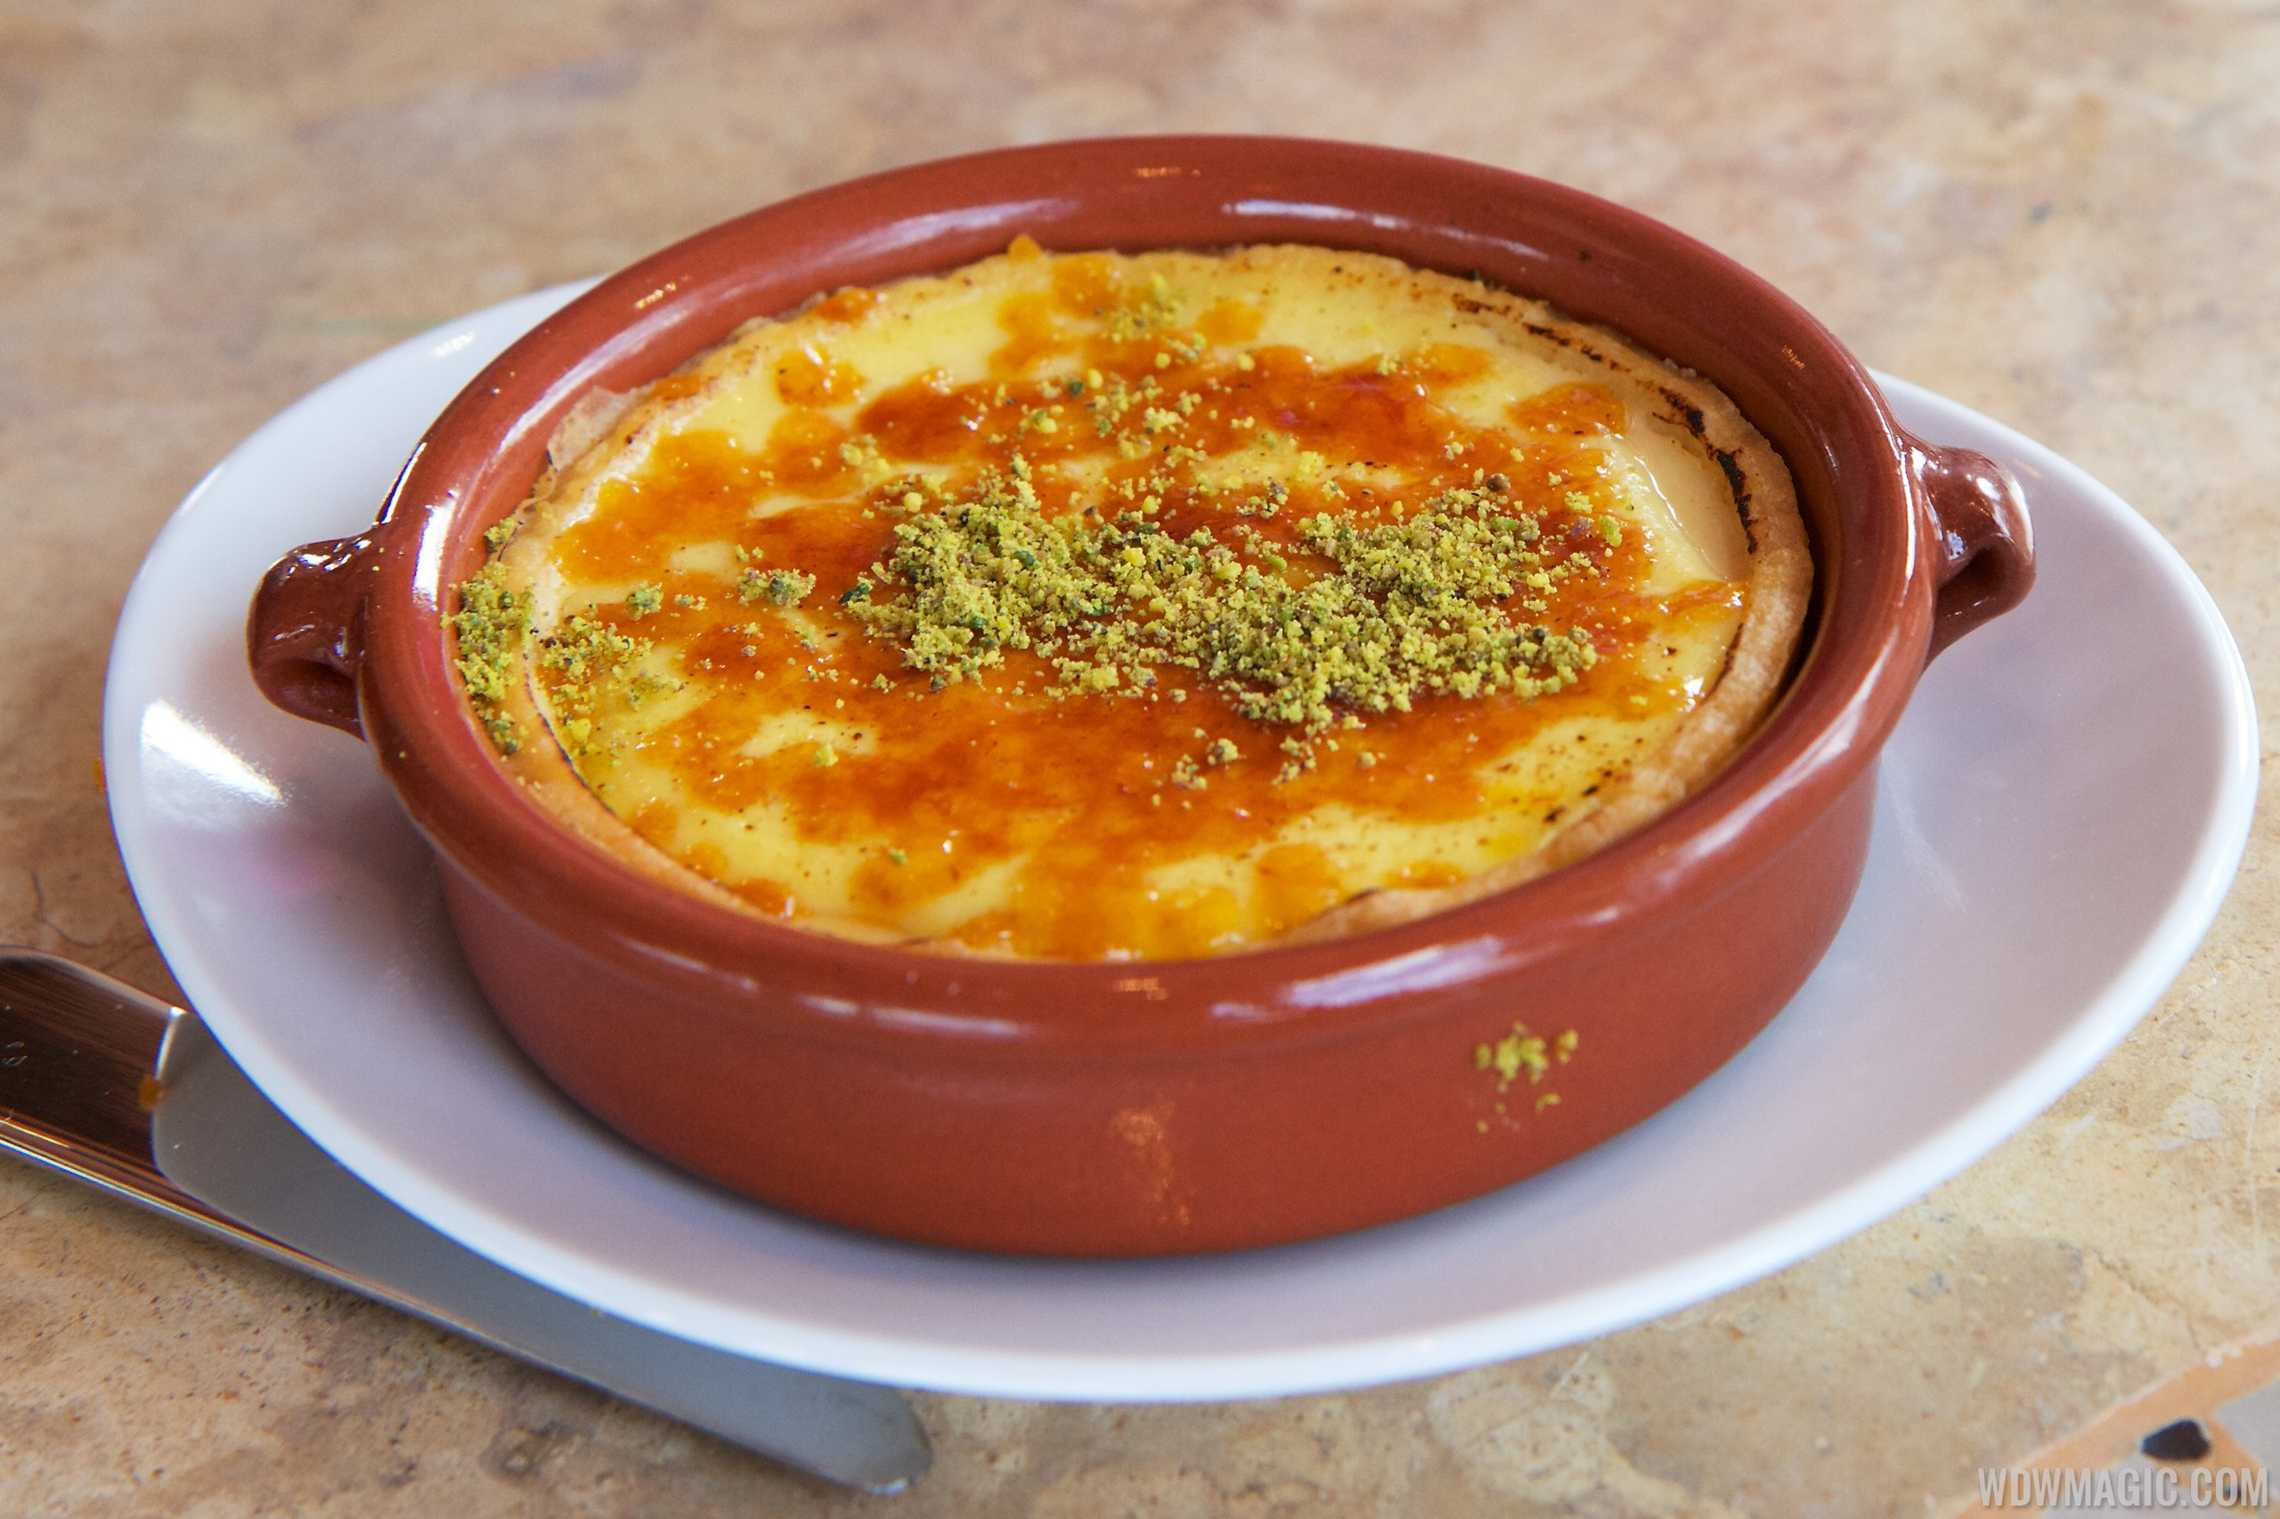 Spice Road Table - Safron and Lemon Custard $7